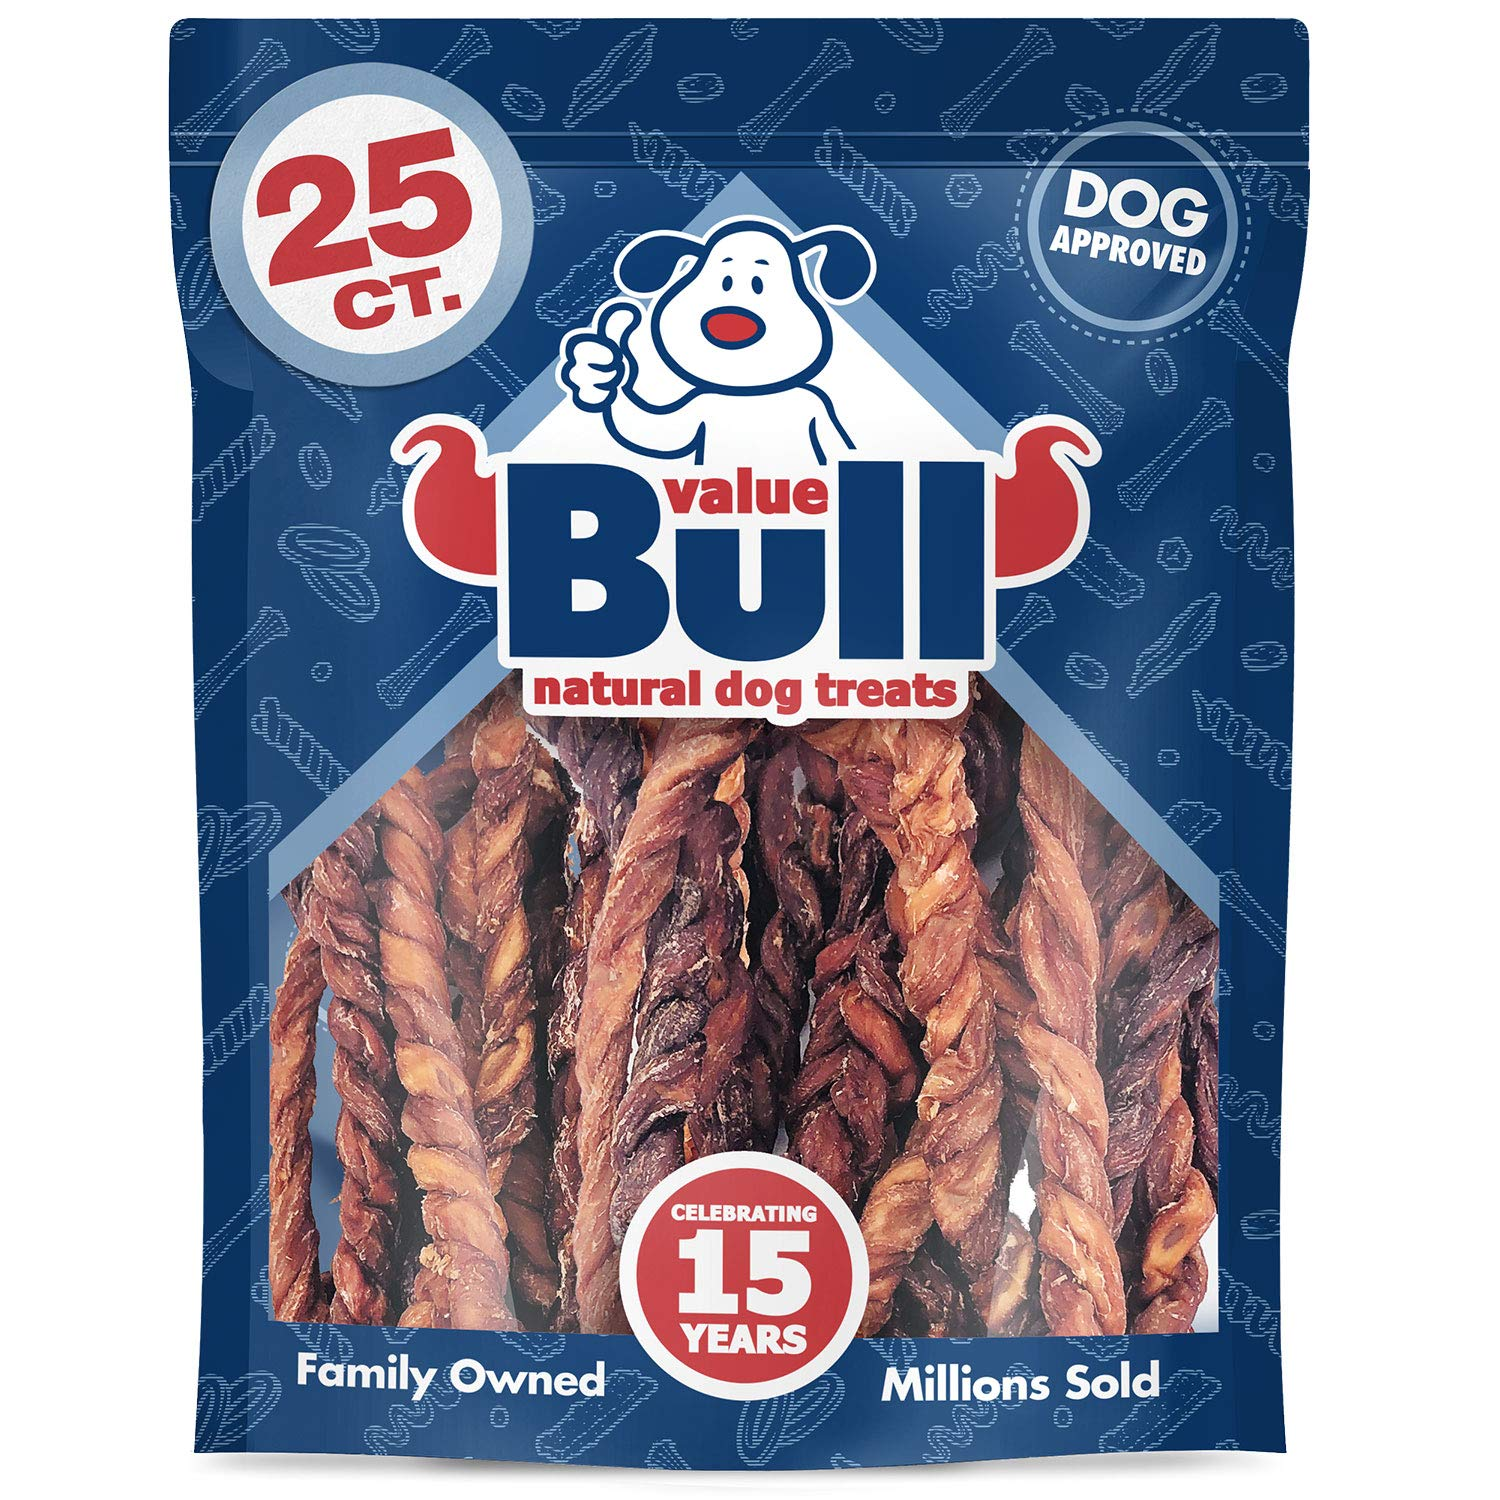 ValueBull USA Twisted Lamb Weasand Dog Chews, 25 Count